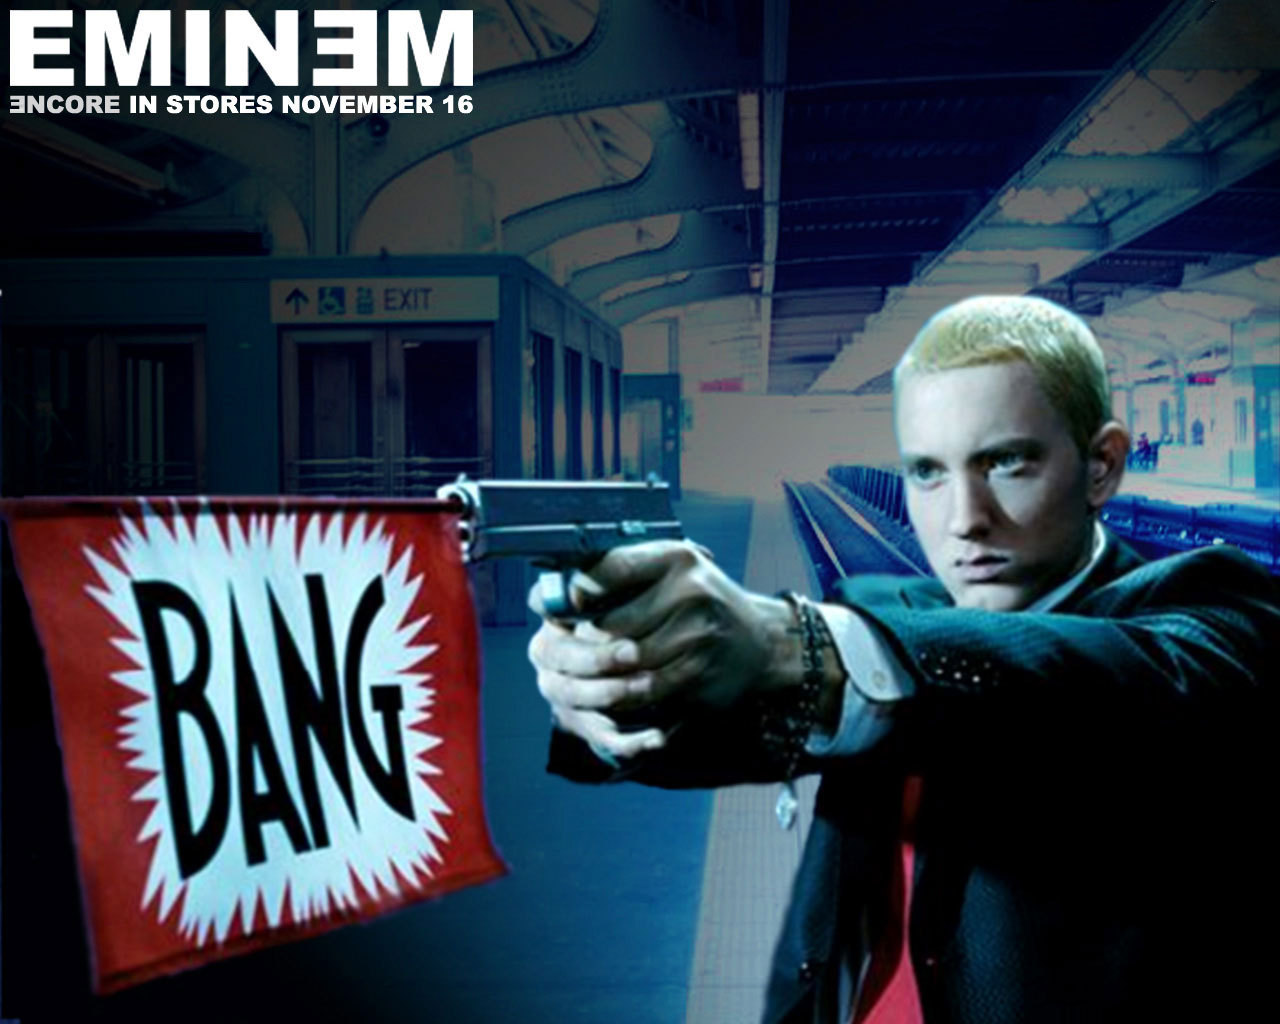 Animalwallpaperhome Eminem Wallpaper For Pc